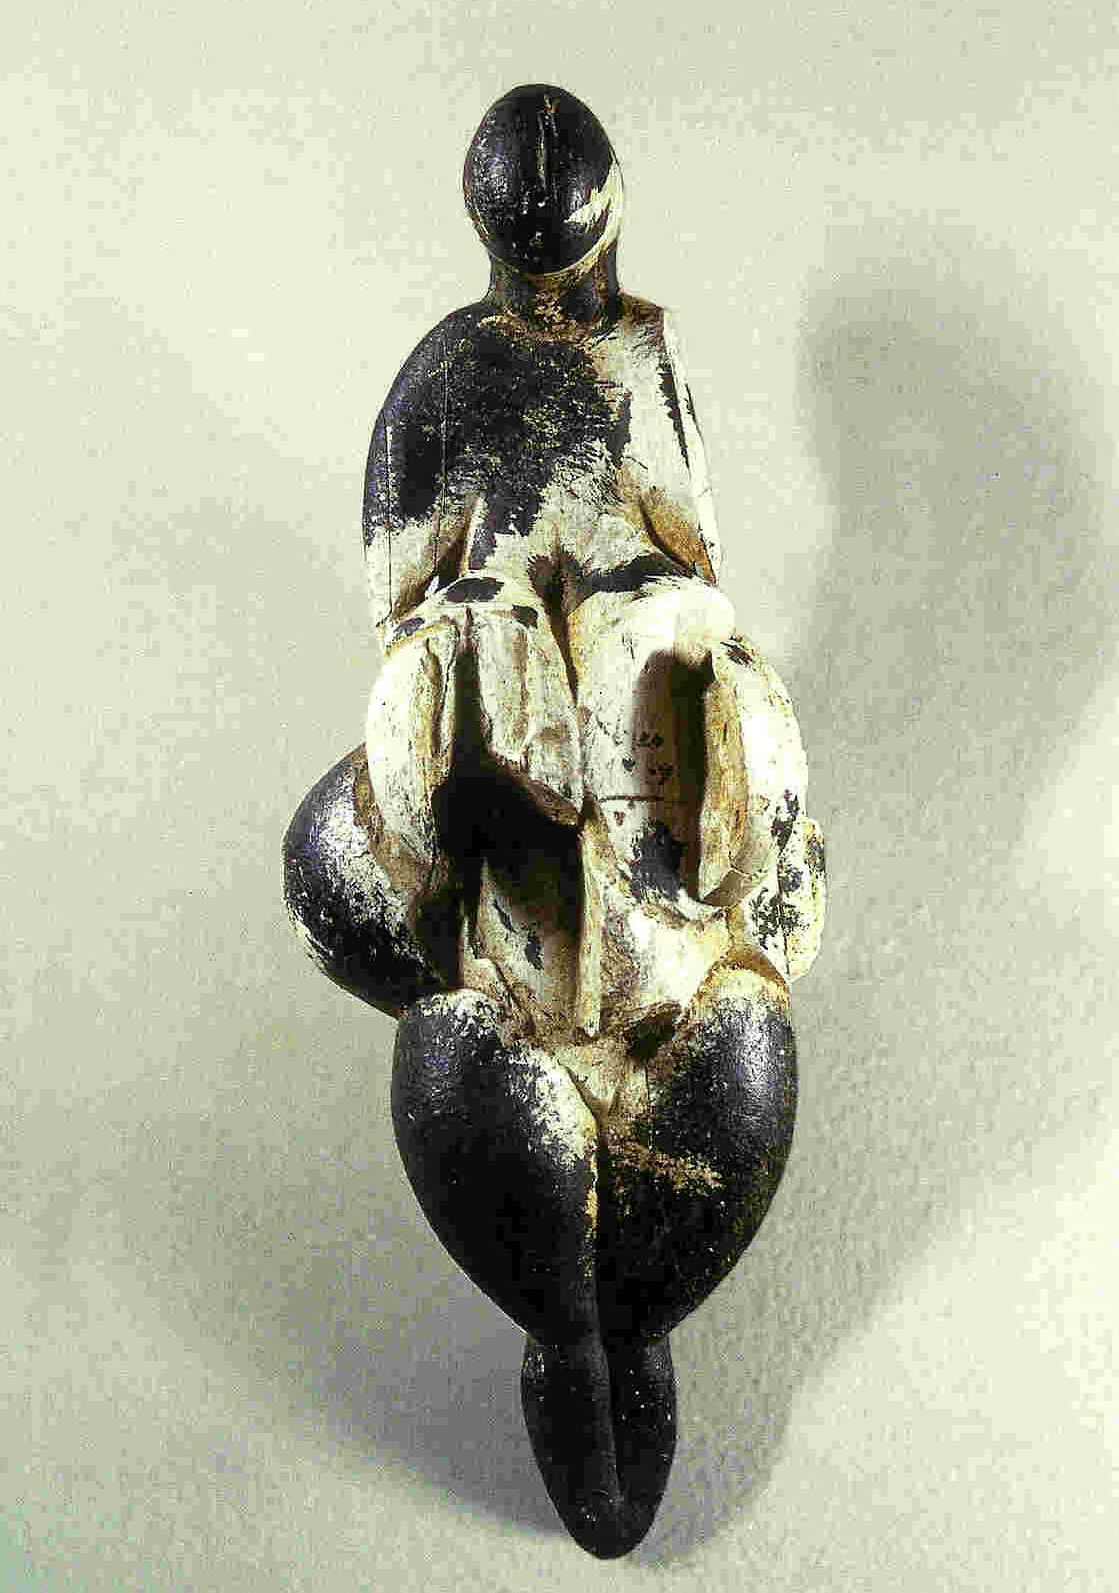 Venus van Lespugue. Voorkant. Uit de grot van Rideau, Haute-Garonne, Frankrijk. 14,7 cm. Zwarte mammoettand. Thans in Musée des Antiquités Nationales, Saint-Germain-en-Laye.